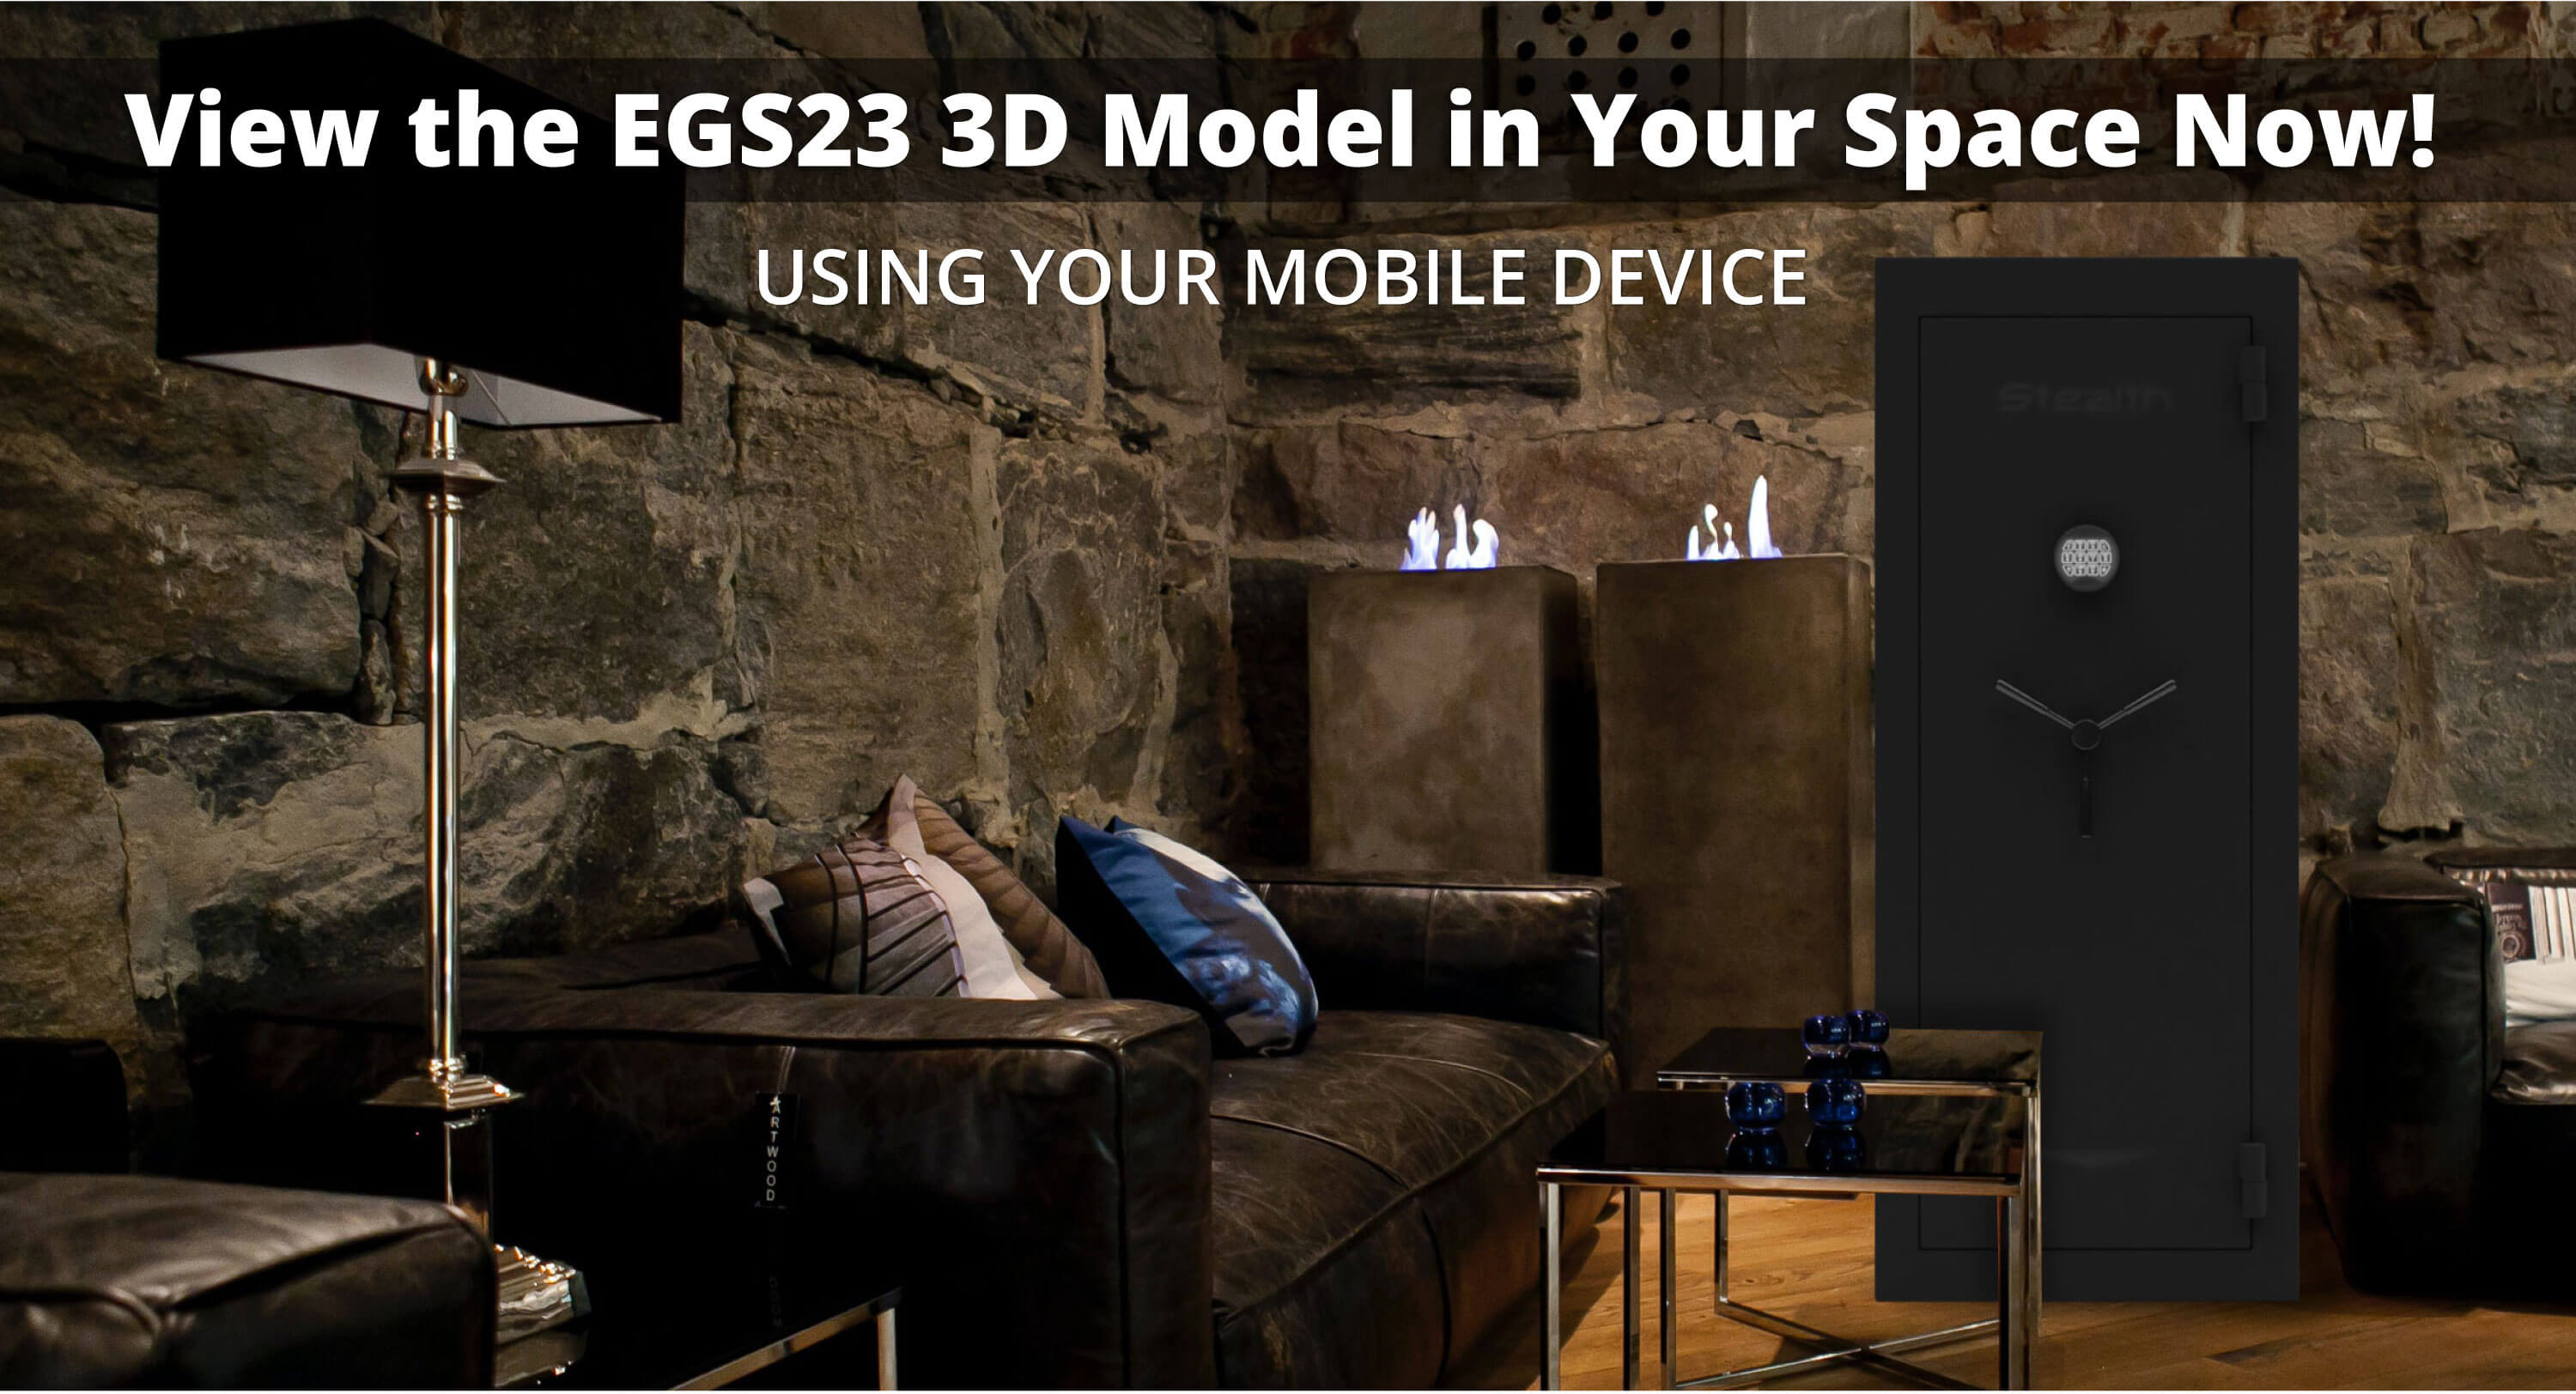 Stealth EGS23 Economy Gun Safe 3D Model and Augmented Reality Experience Available